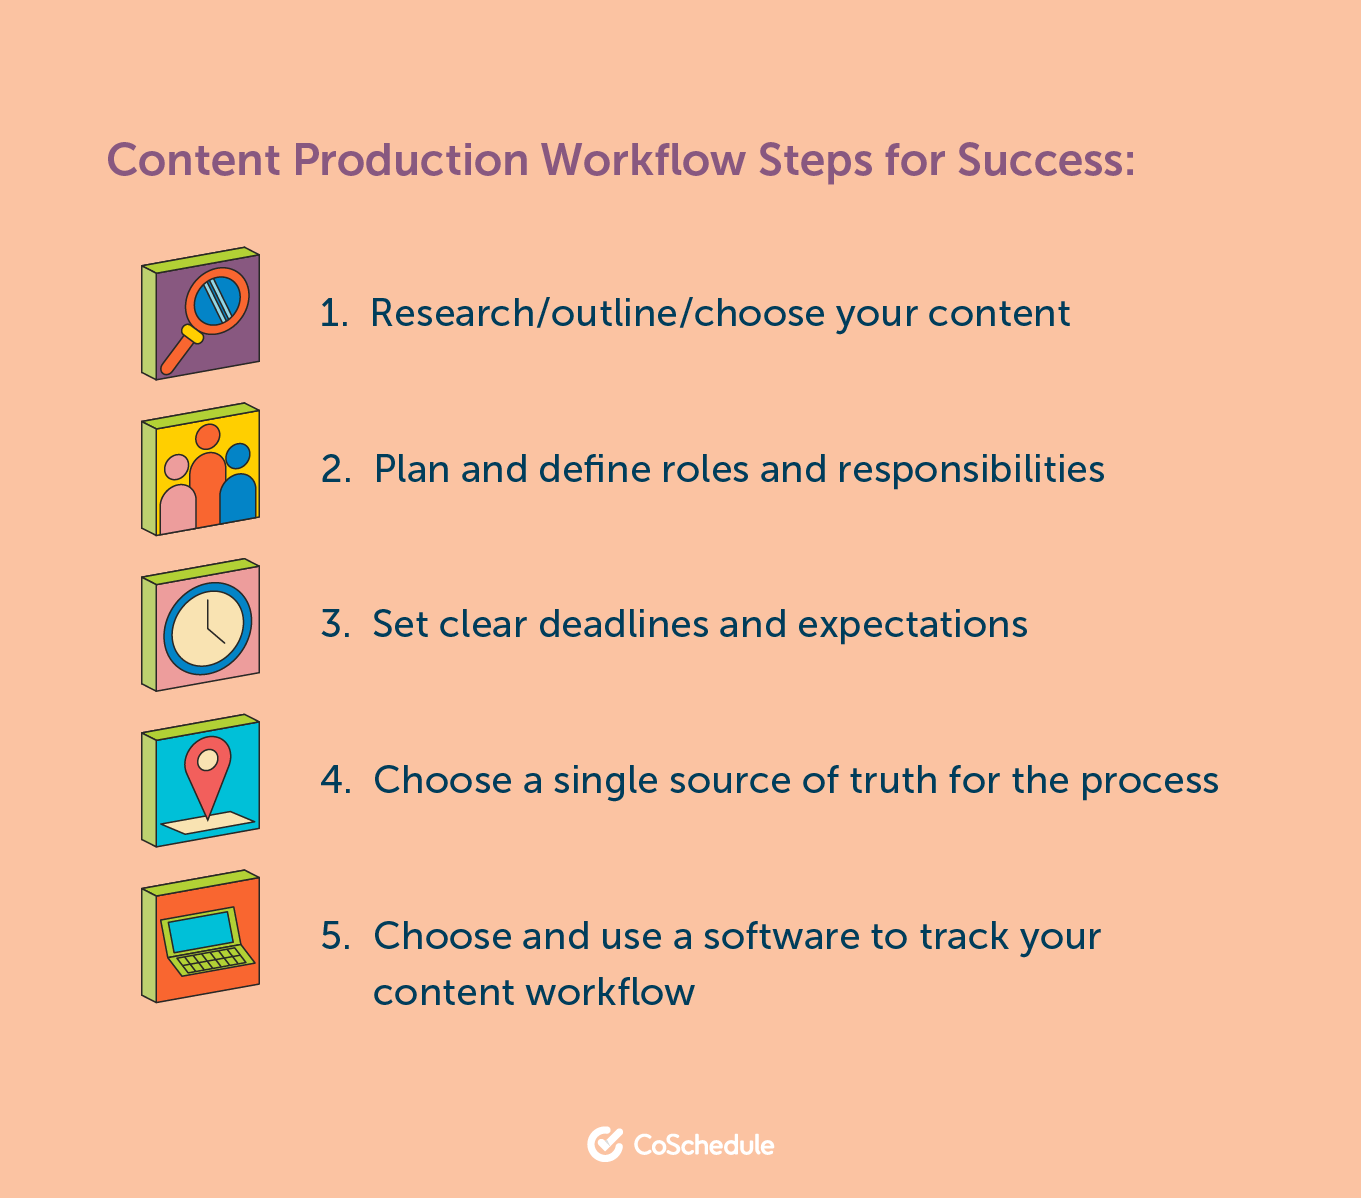 Content production workflow steps